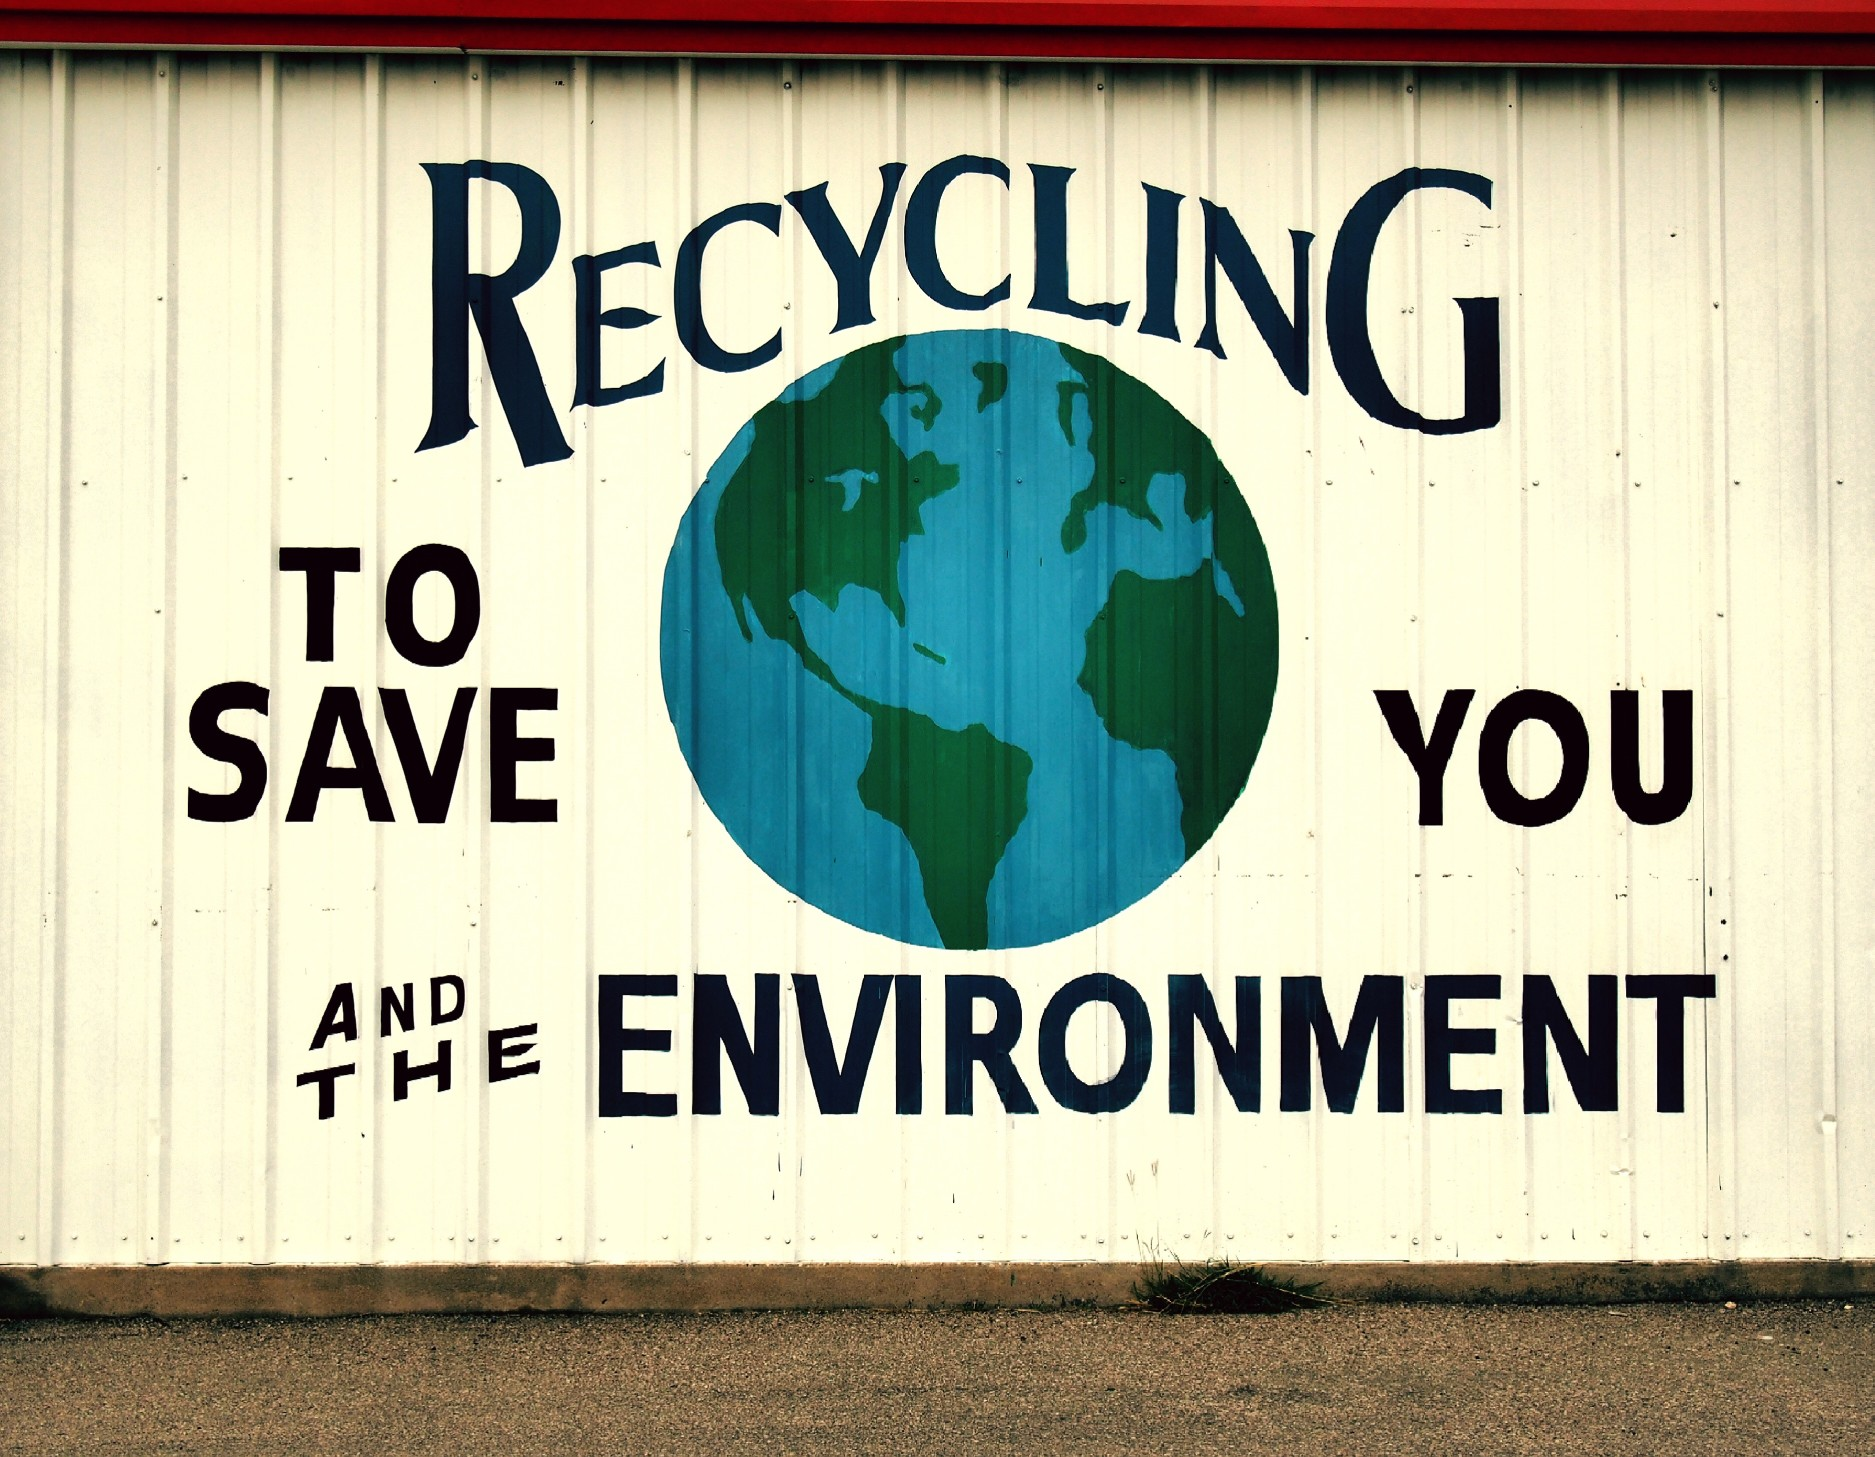 recycling to save you and the environment